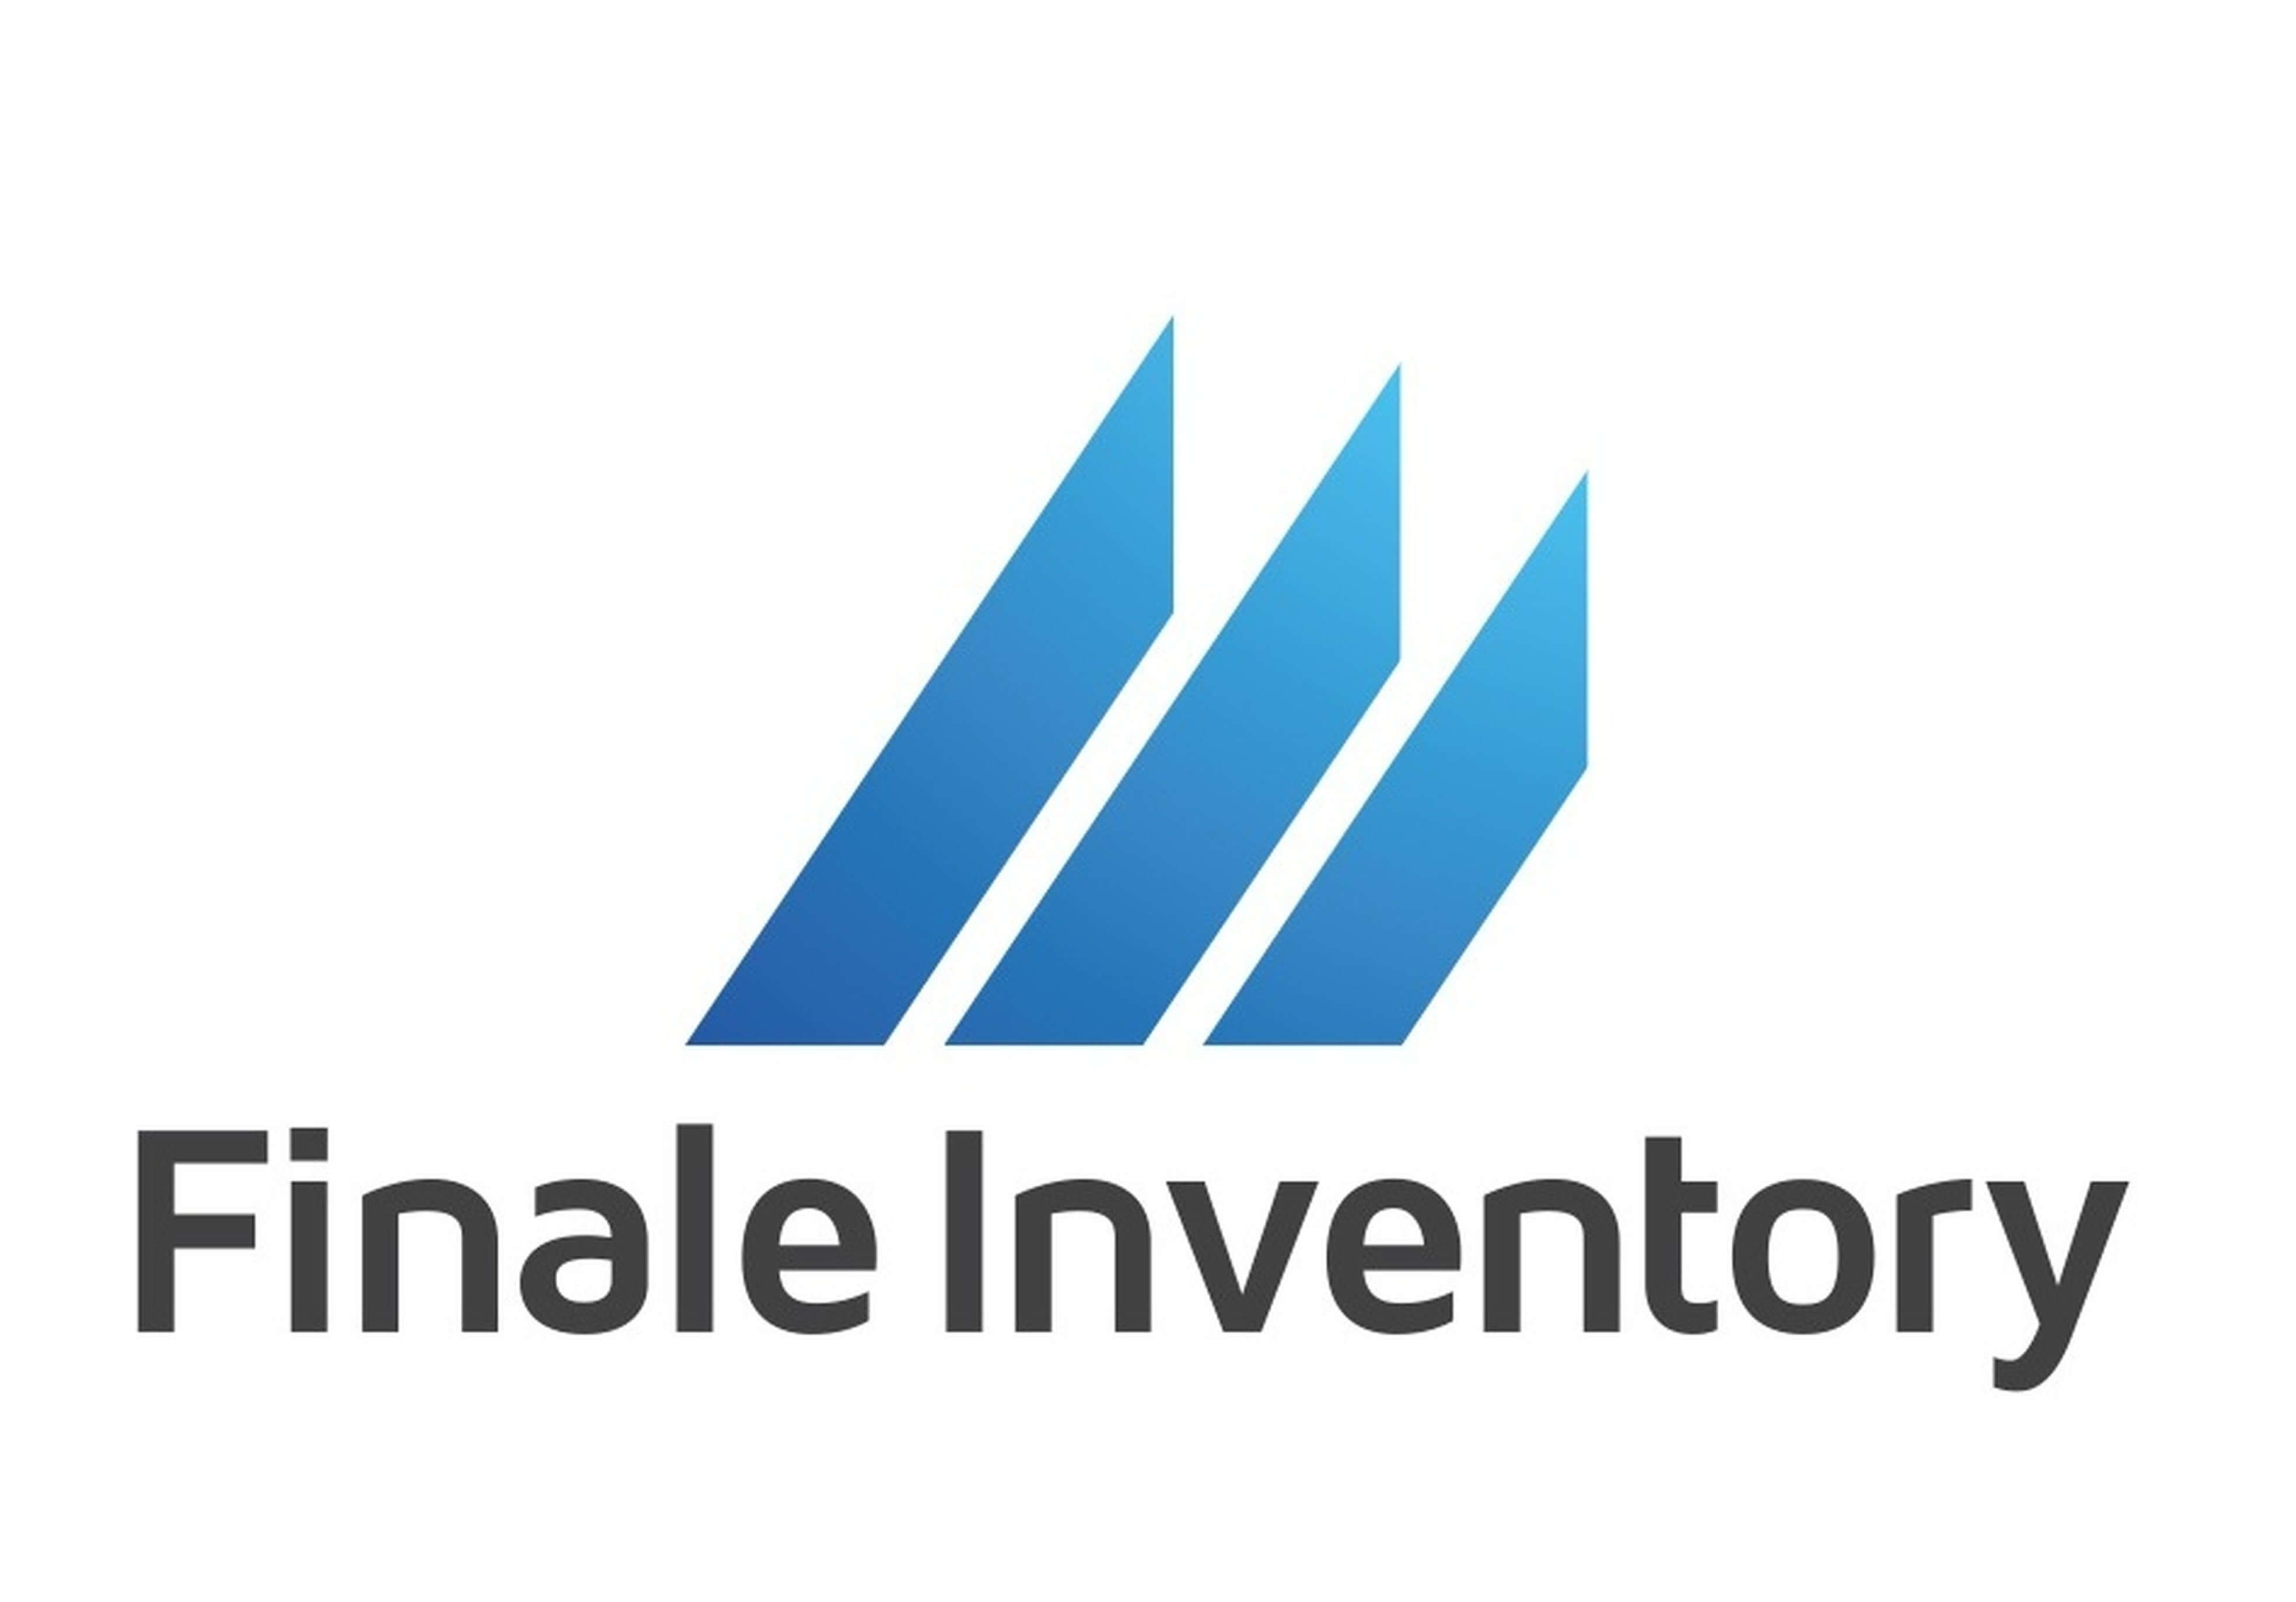 Finale Inventory - Inventory Management Software : SaaSworthy.com